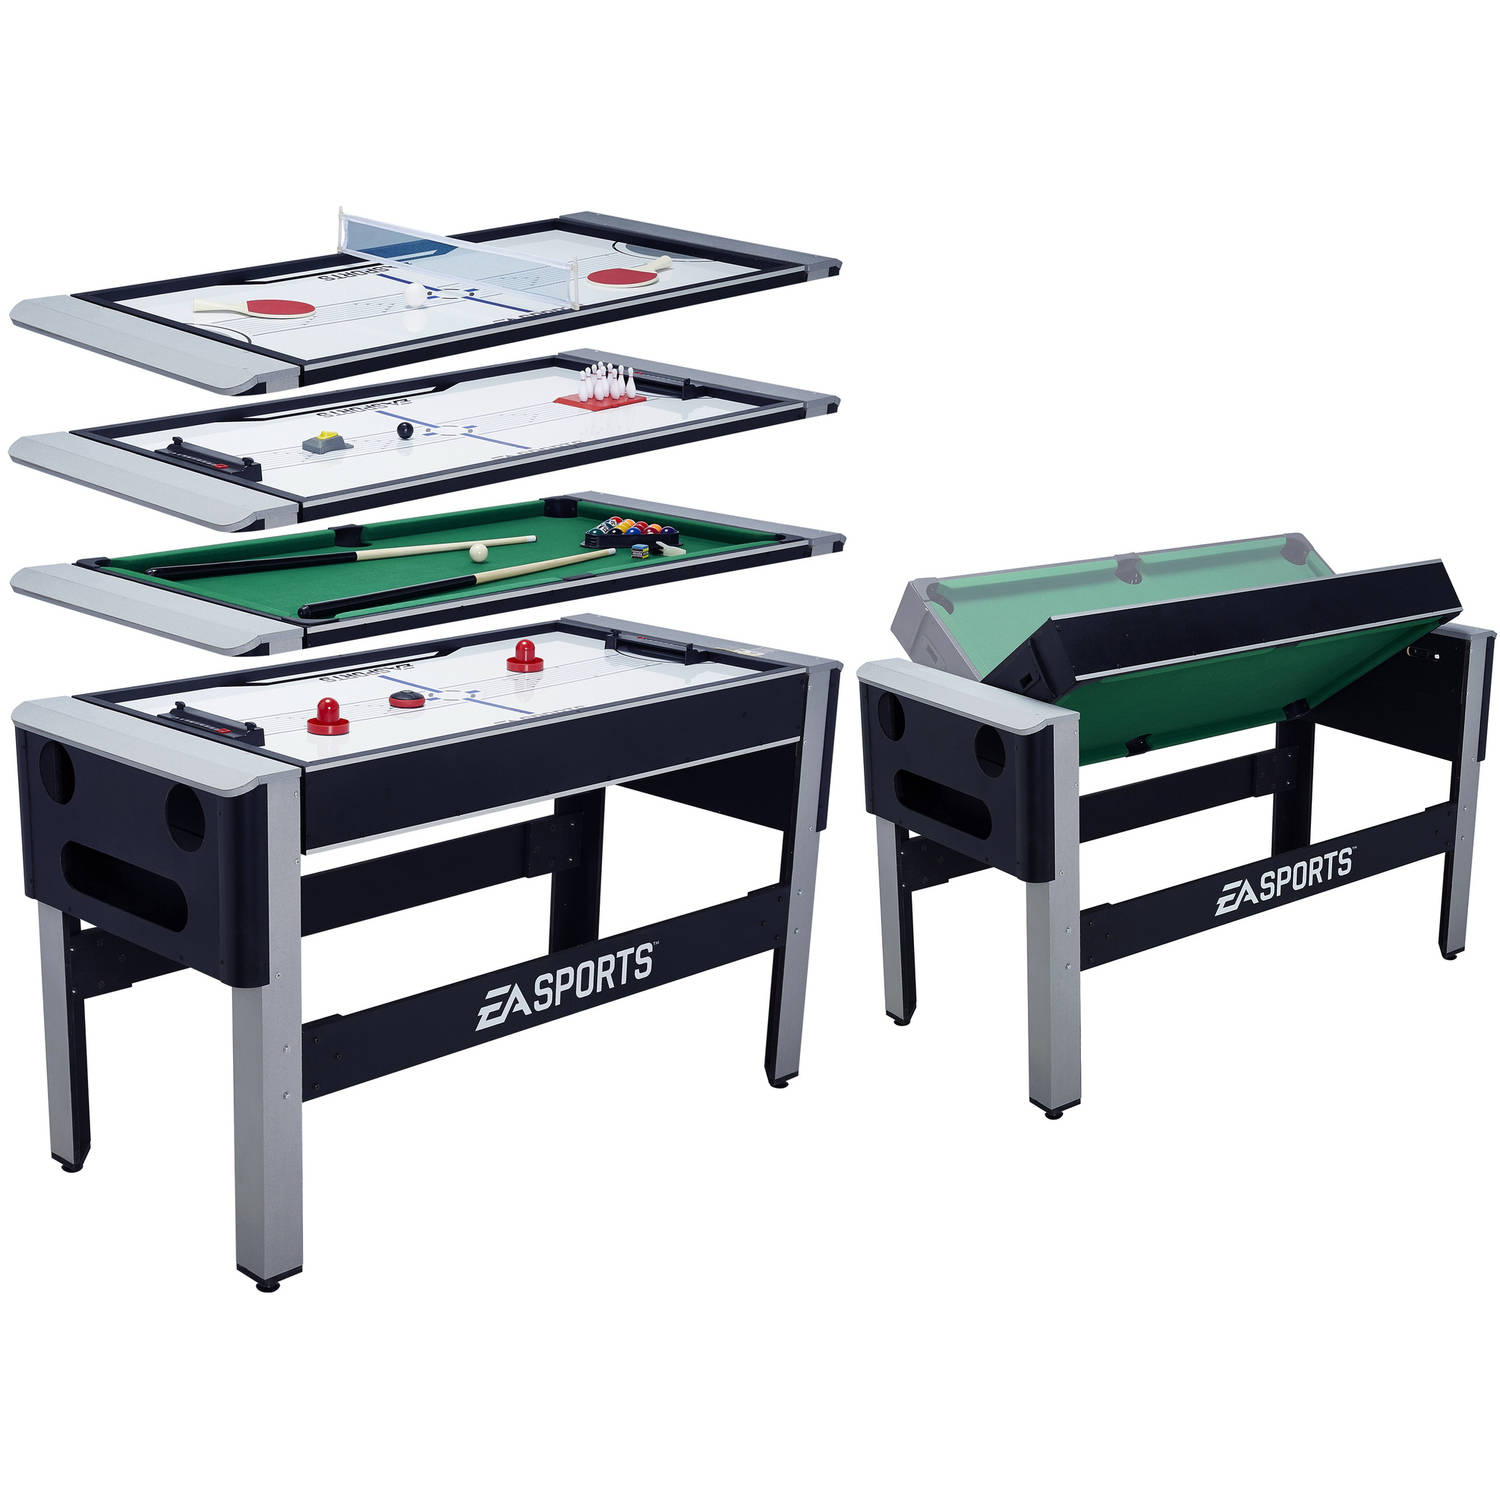 Superbe EA SPORTS 54 Inch 4 In 1 Swivel Combo Table   4 Games With